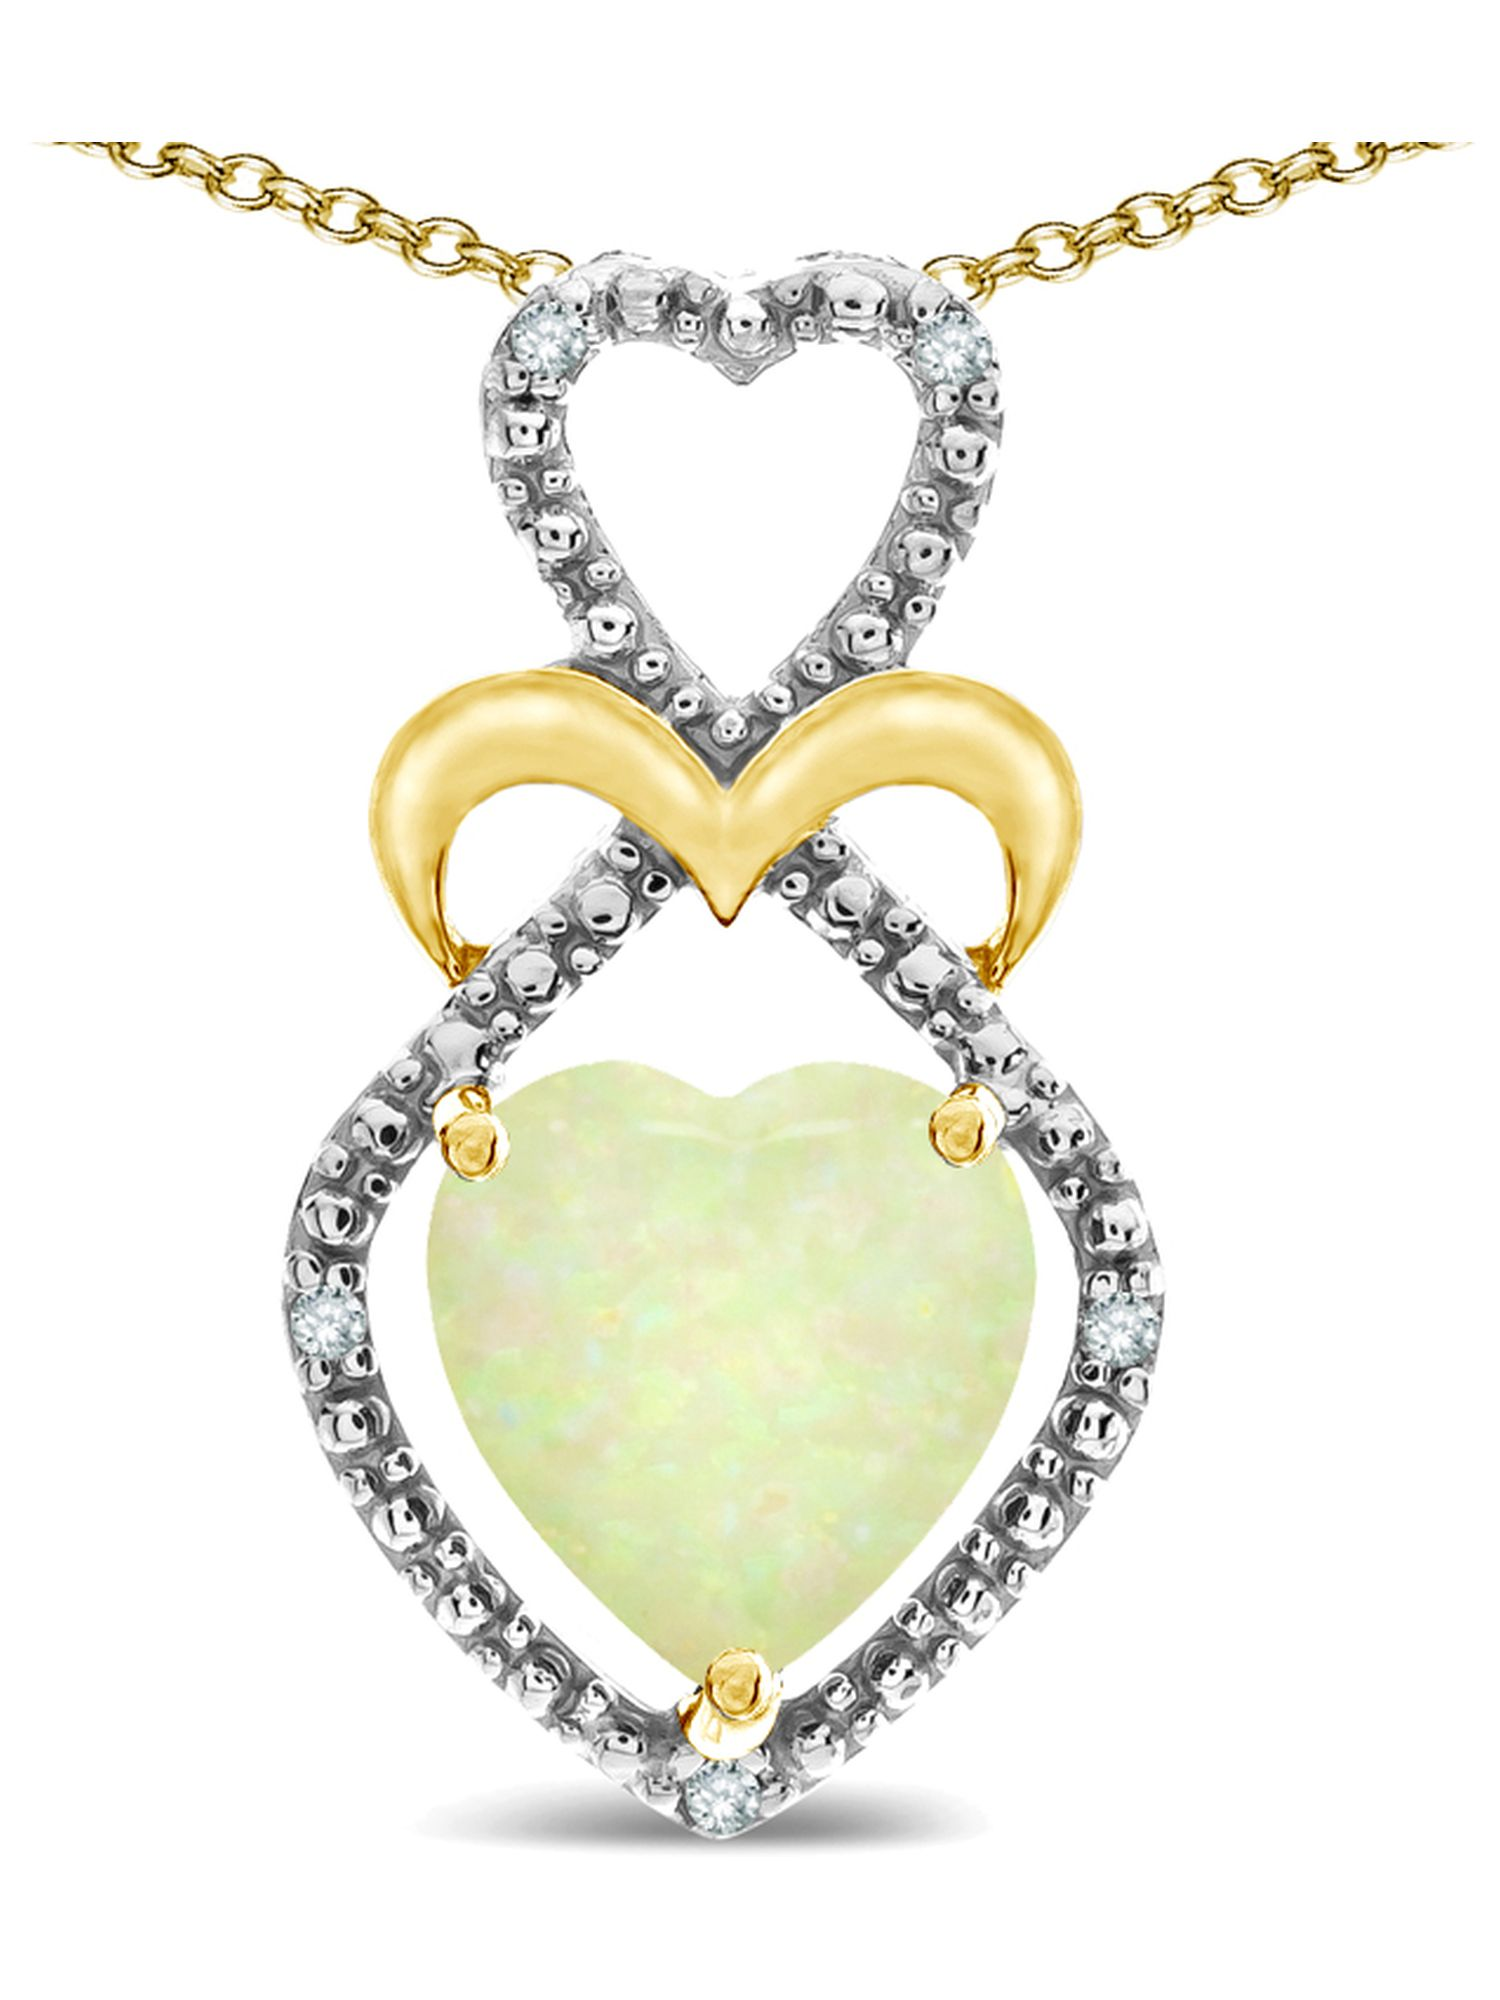 Star K Heart Shape 8mm Opal Heart Halo Embrace Pendant Necklace 14k Yellow Gold with Rhodium Finish